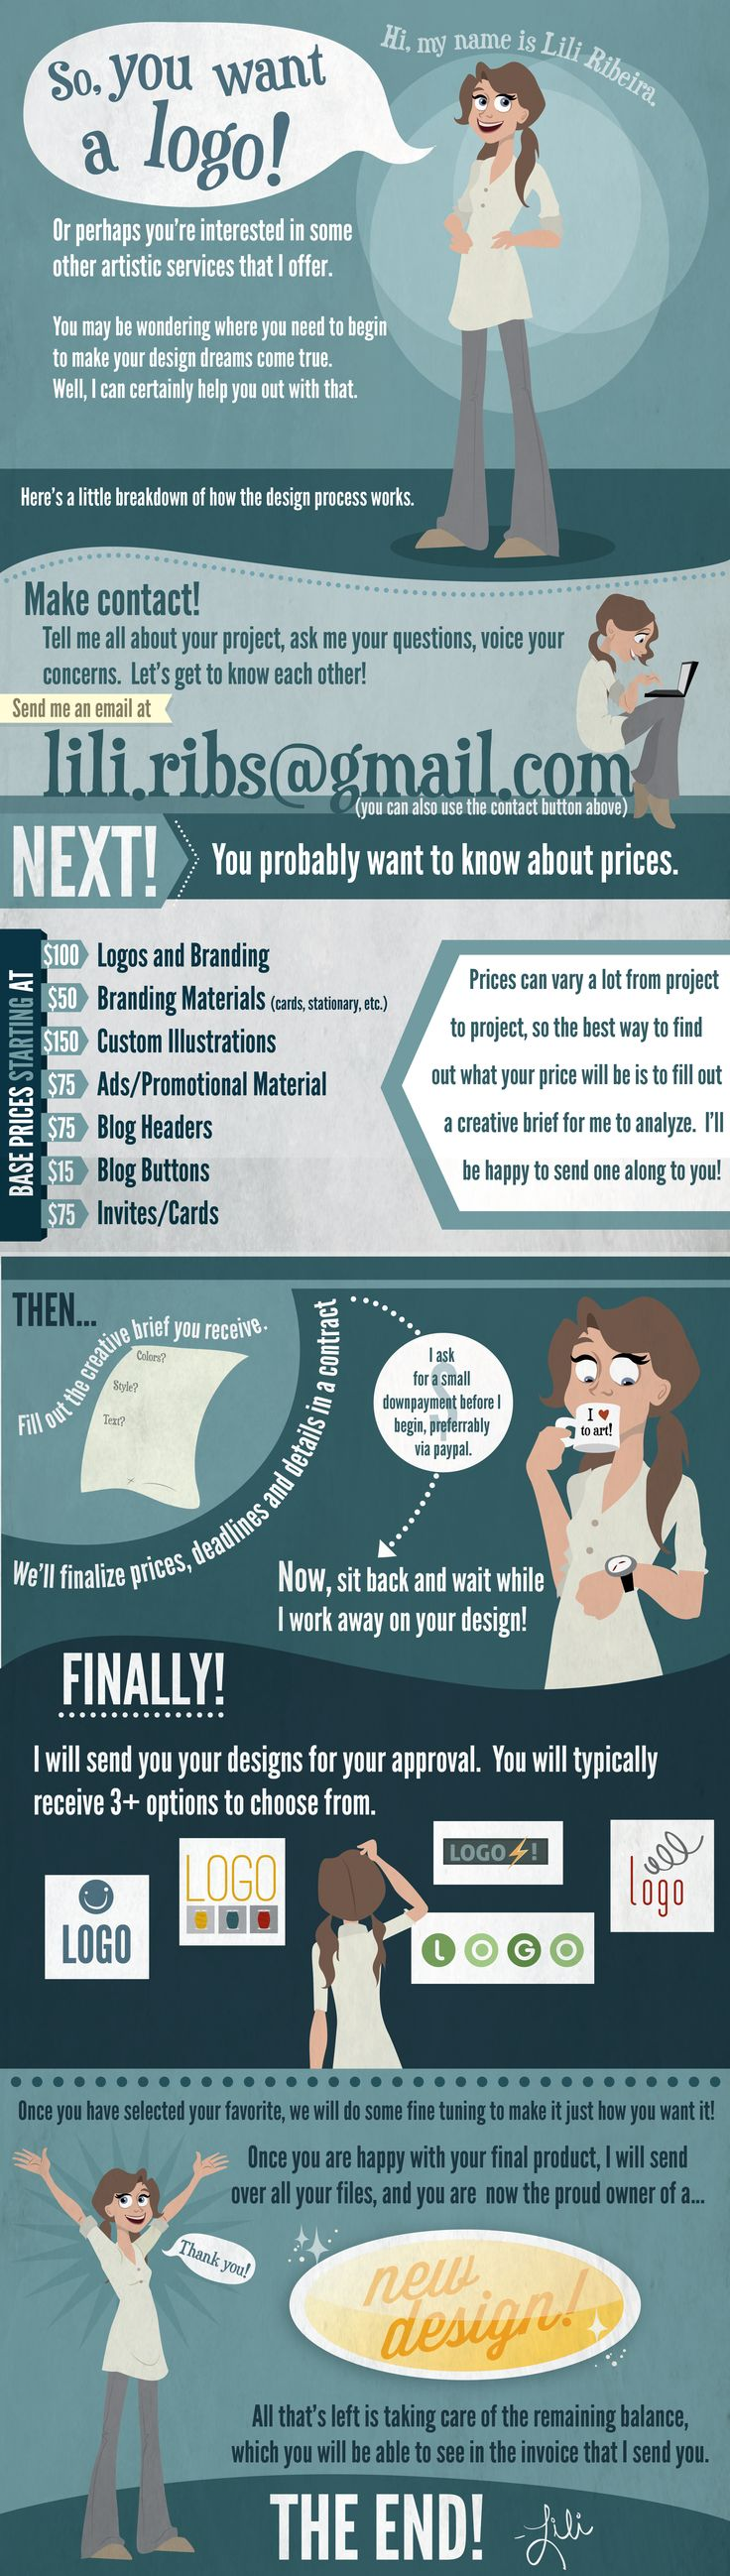 Really Cute, Concise And Awesome Infographic For A Freelance Graphic  Designer!